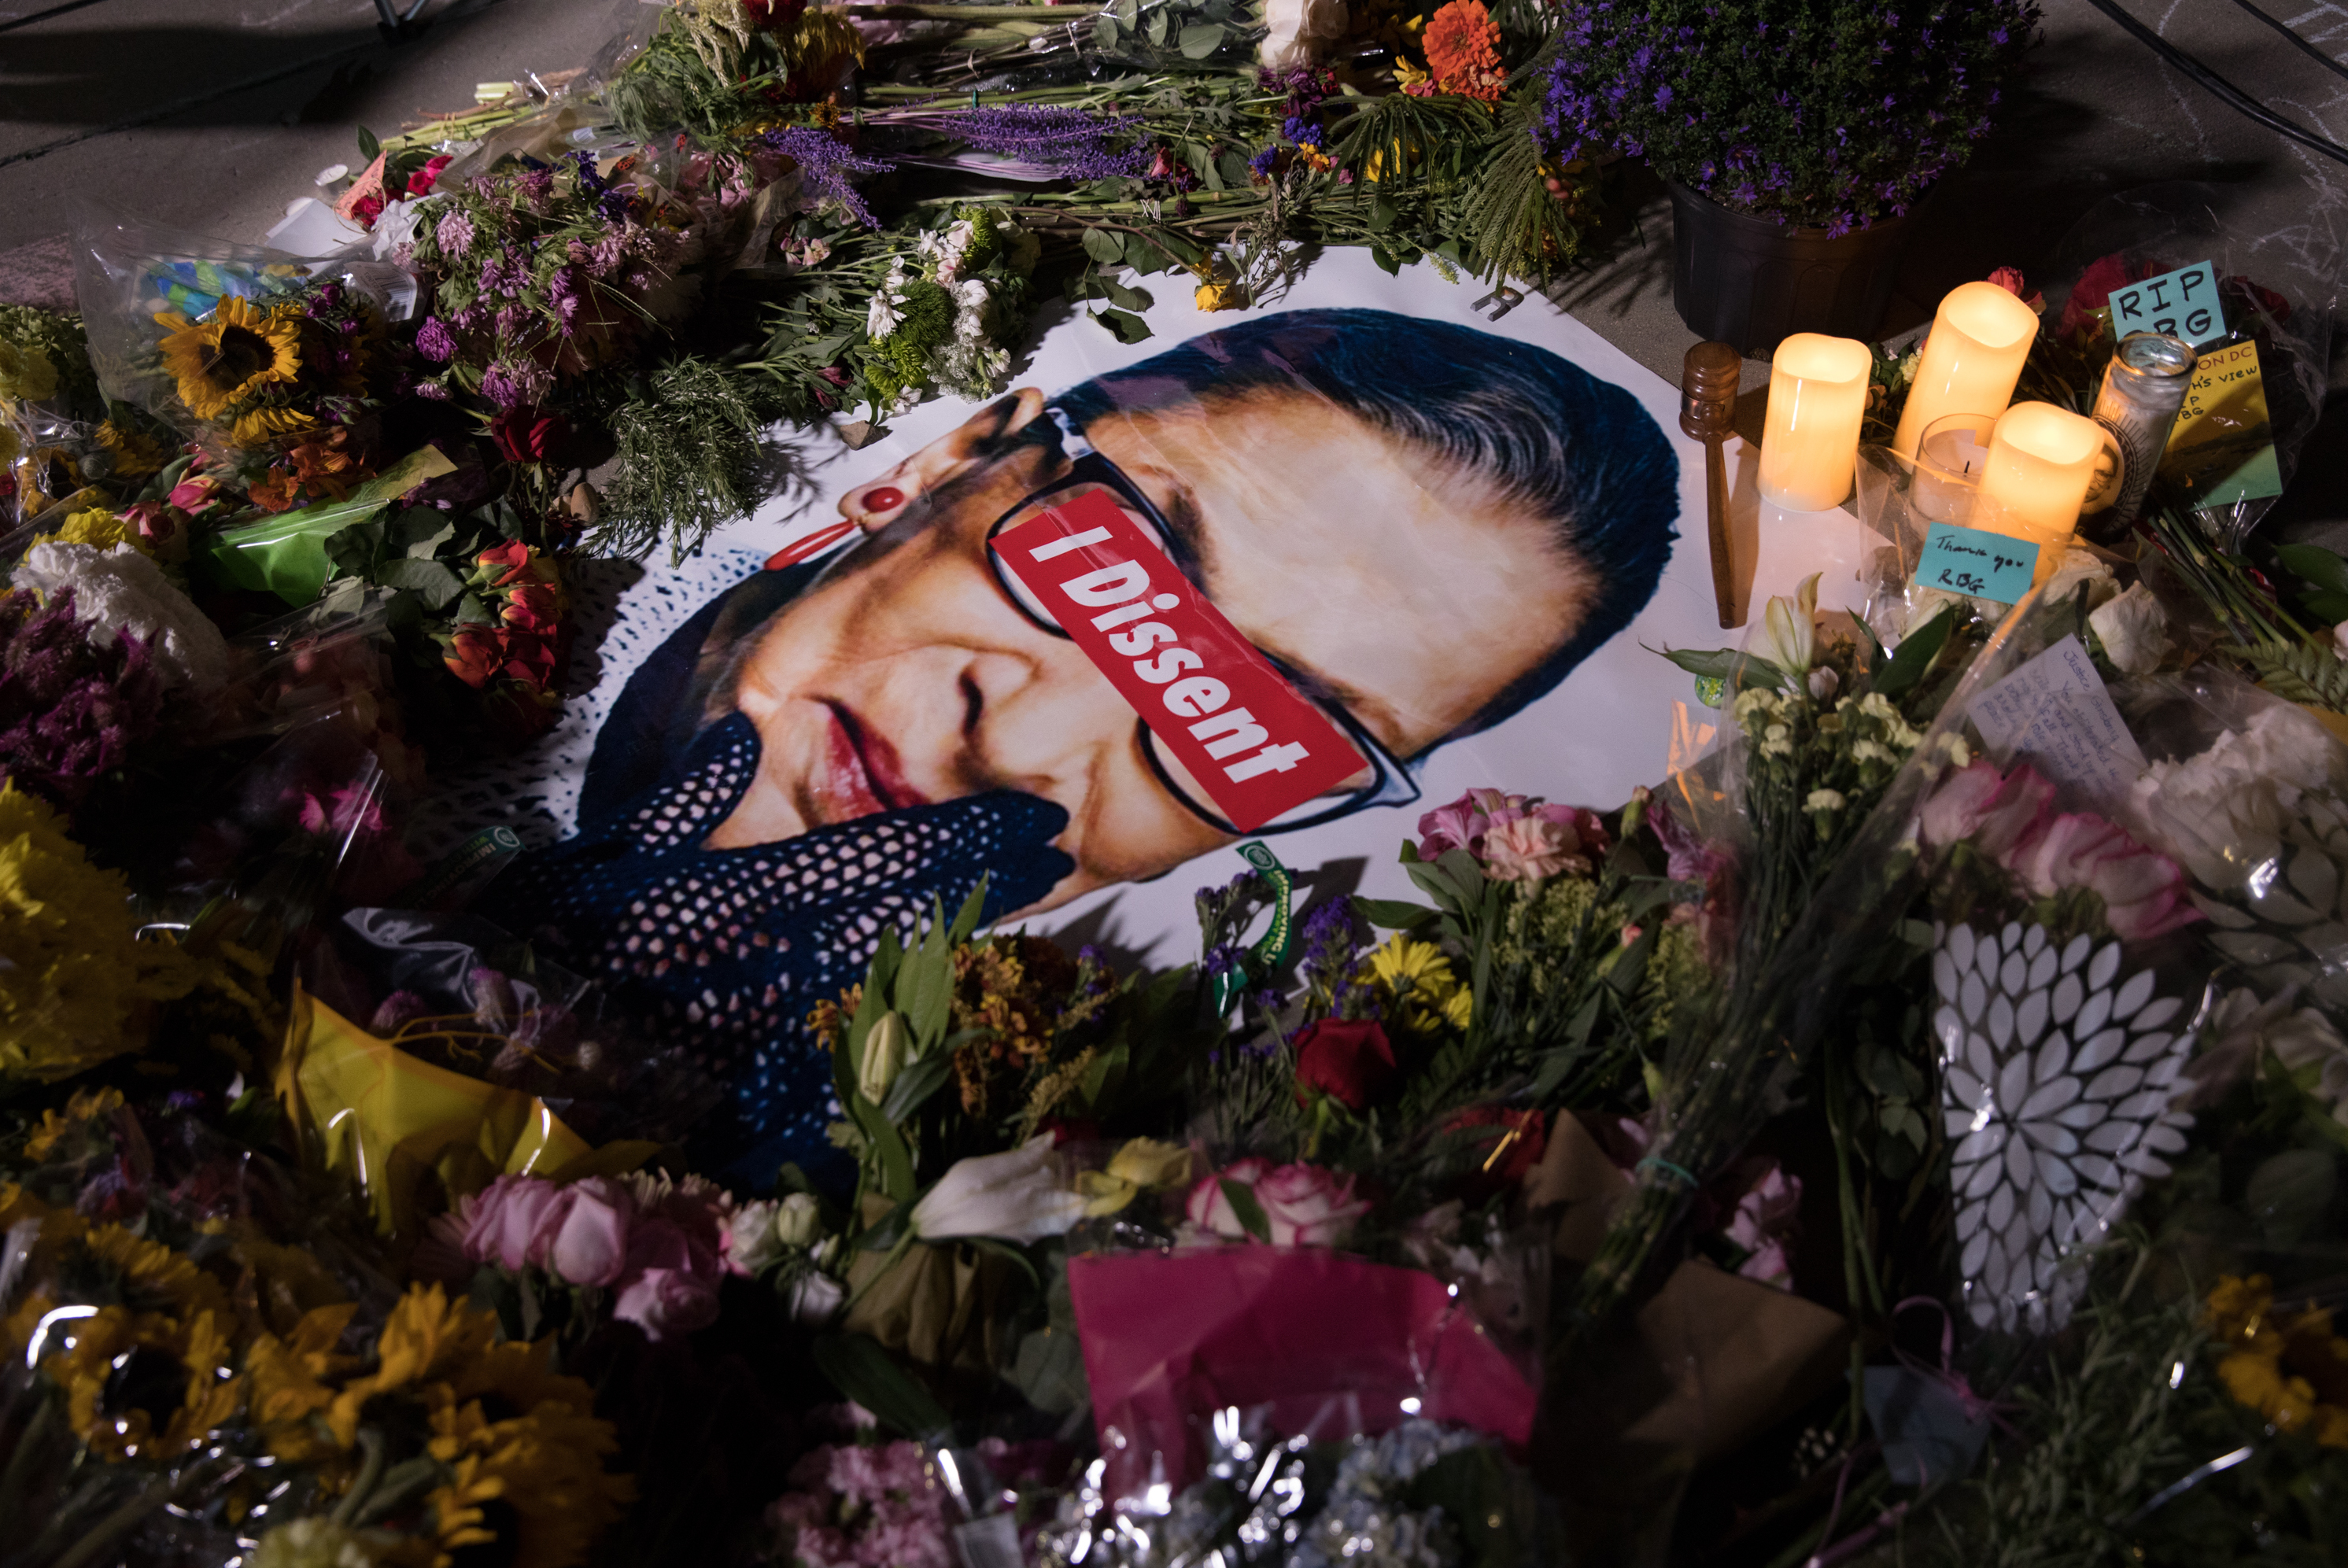 An image of Ruth Bader Ginsburg sits surrounded by flowers during the vigil.